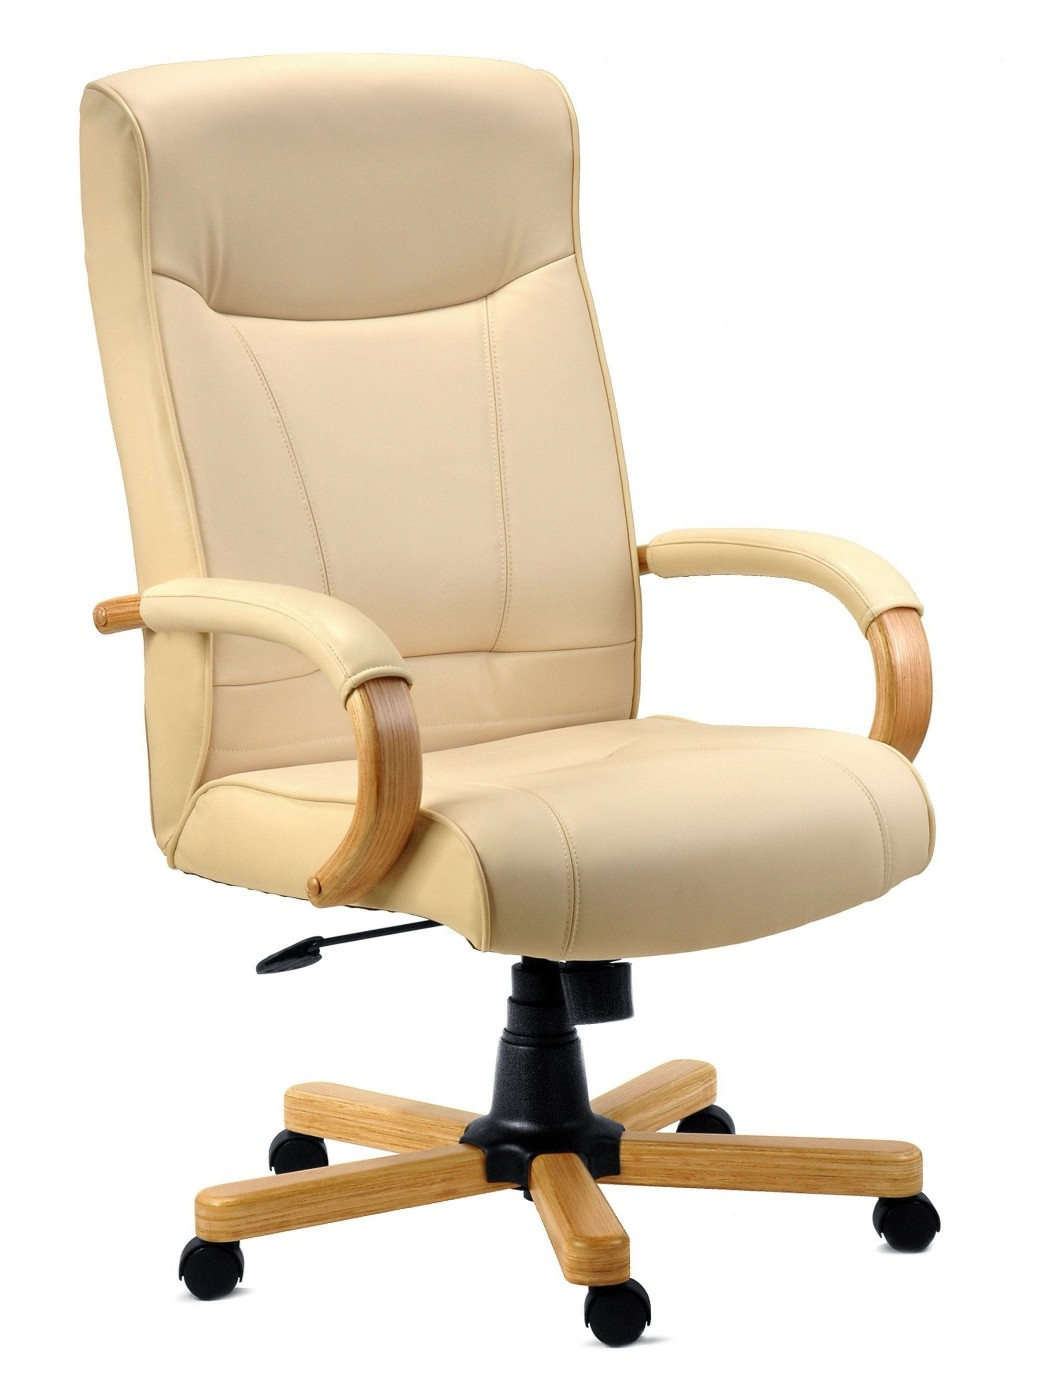 executive chair 8513 121 office furniture